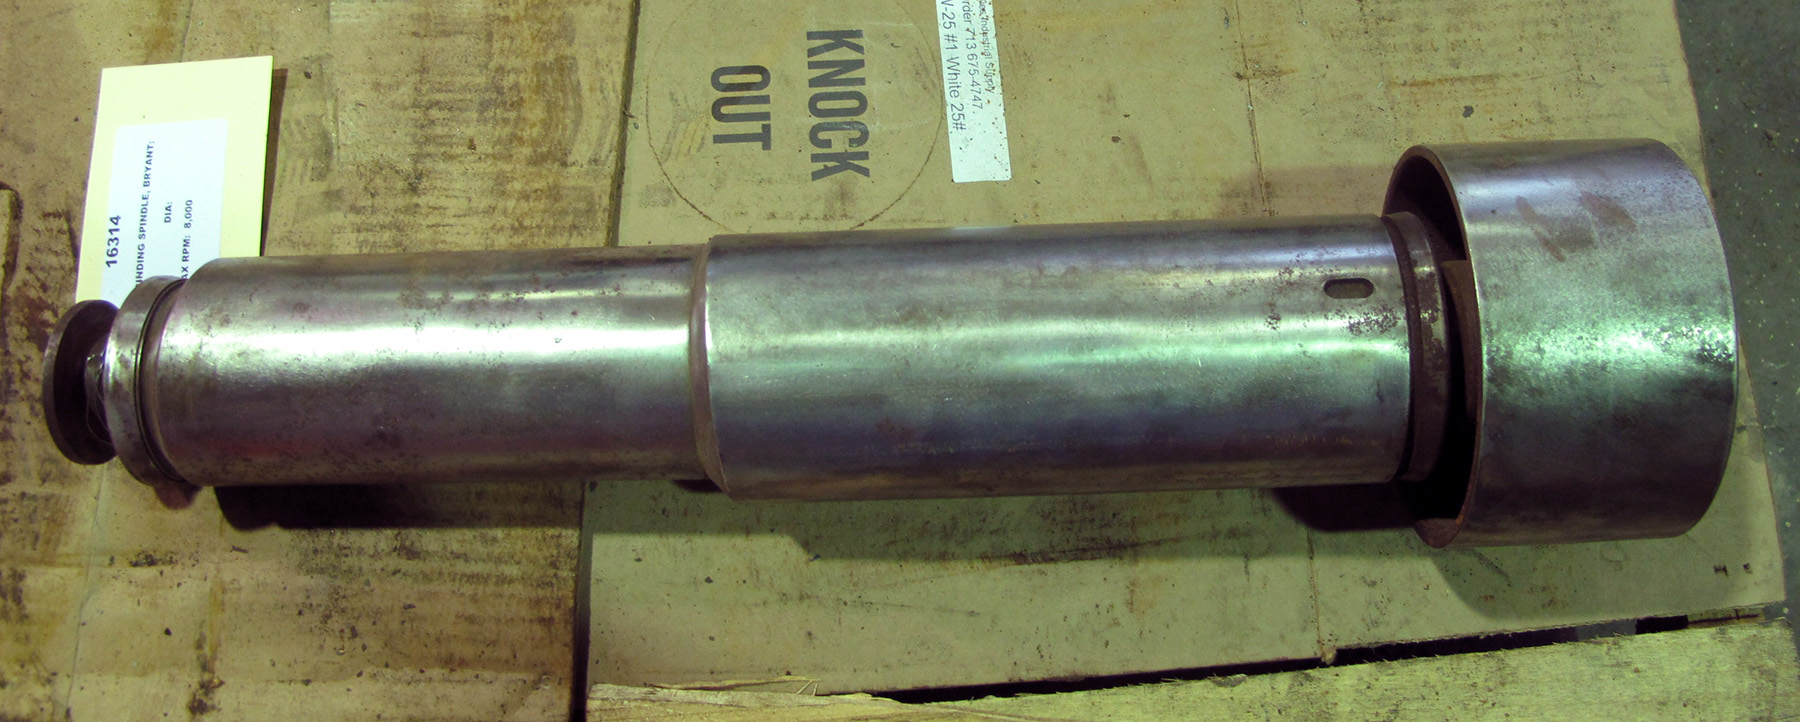 USED, GRINDING SPINDLE, BRYANT MODEL 185 G-18168